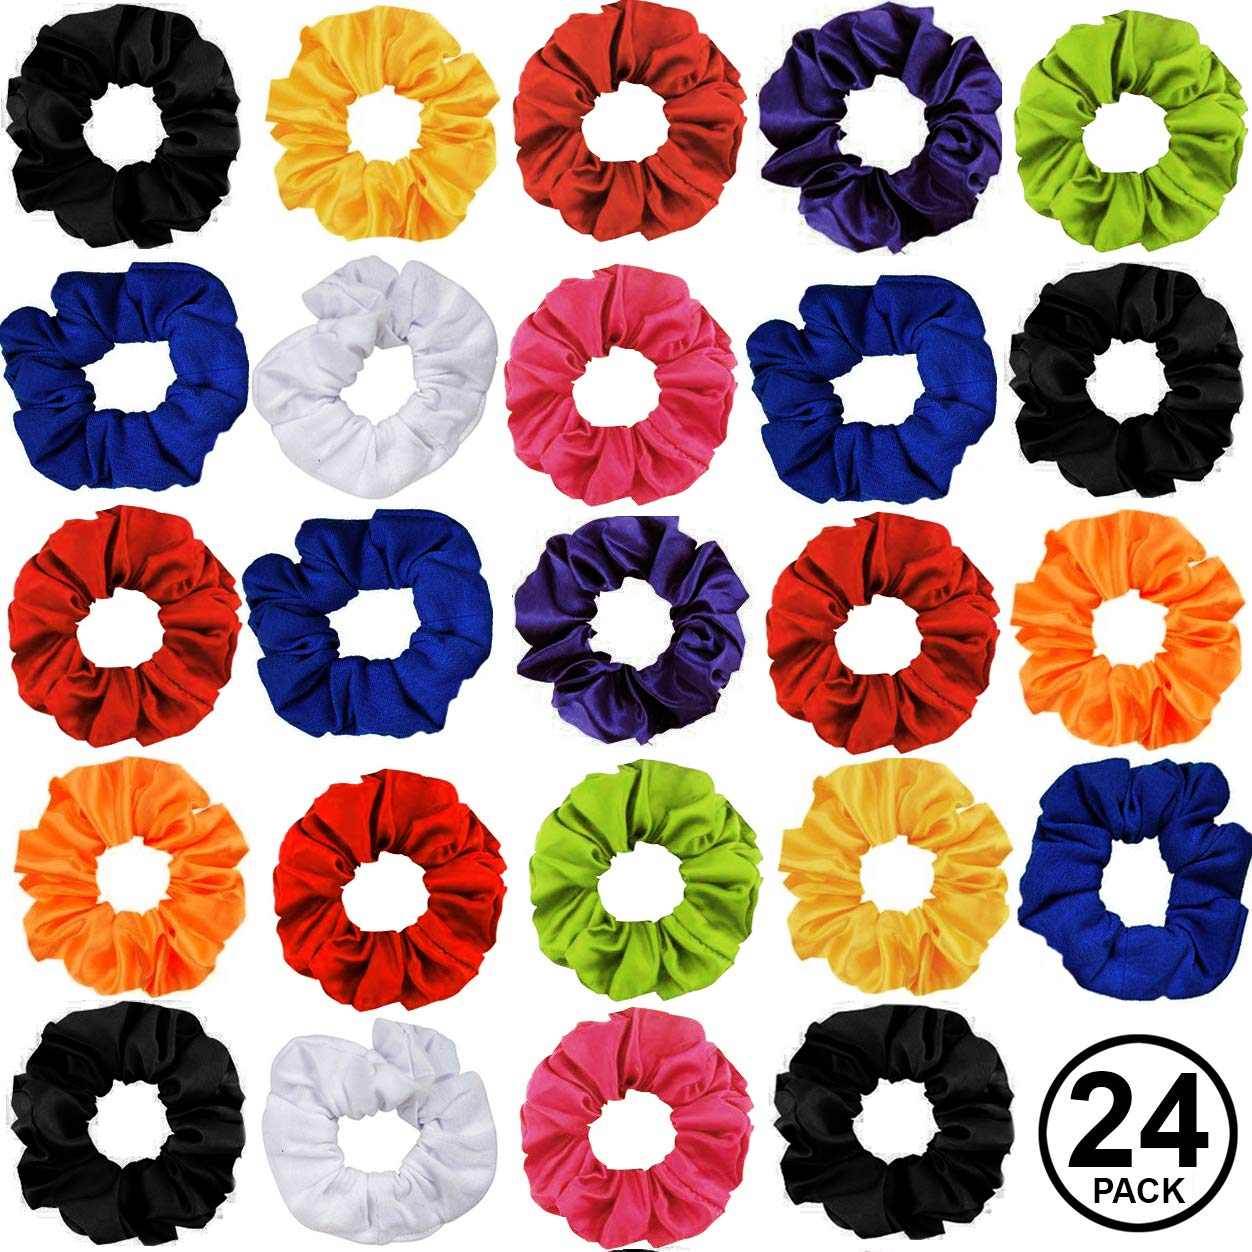 a4495f0247a26 CoverYourHair Pony Holders - Scrunchies for Hair - Scrunchy Hair Ties Bulk (Bright  Colors 24